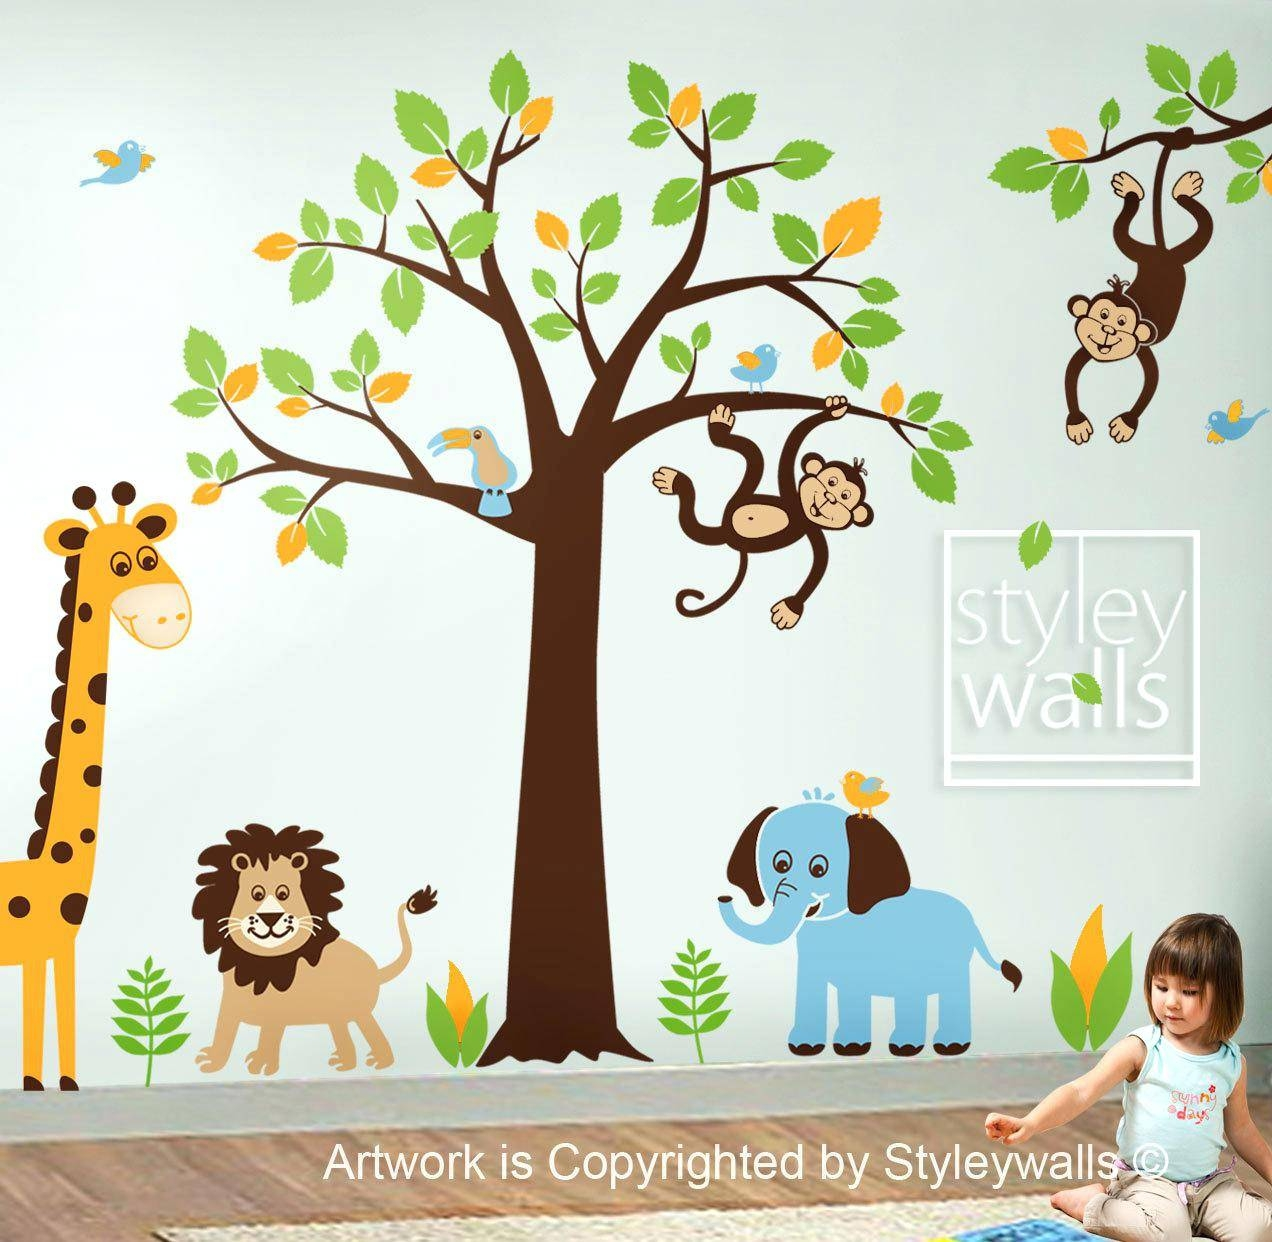 Baby Jungle Wall Decals Deluxe Safari Nursery Wall Art Stickers Regarding Most Up To Date Safari Animal Wall Art (View 4 of 20)